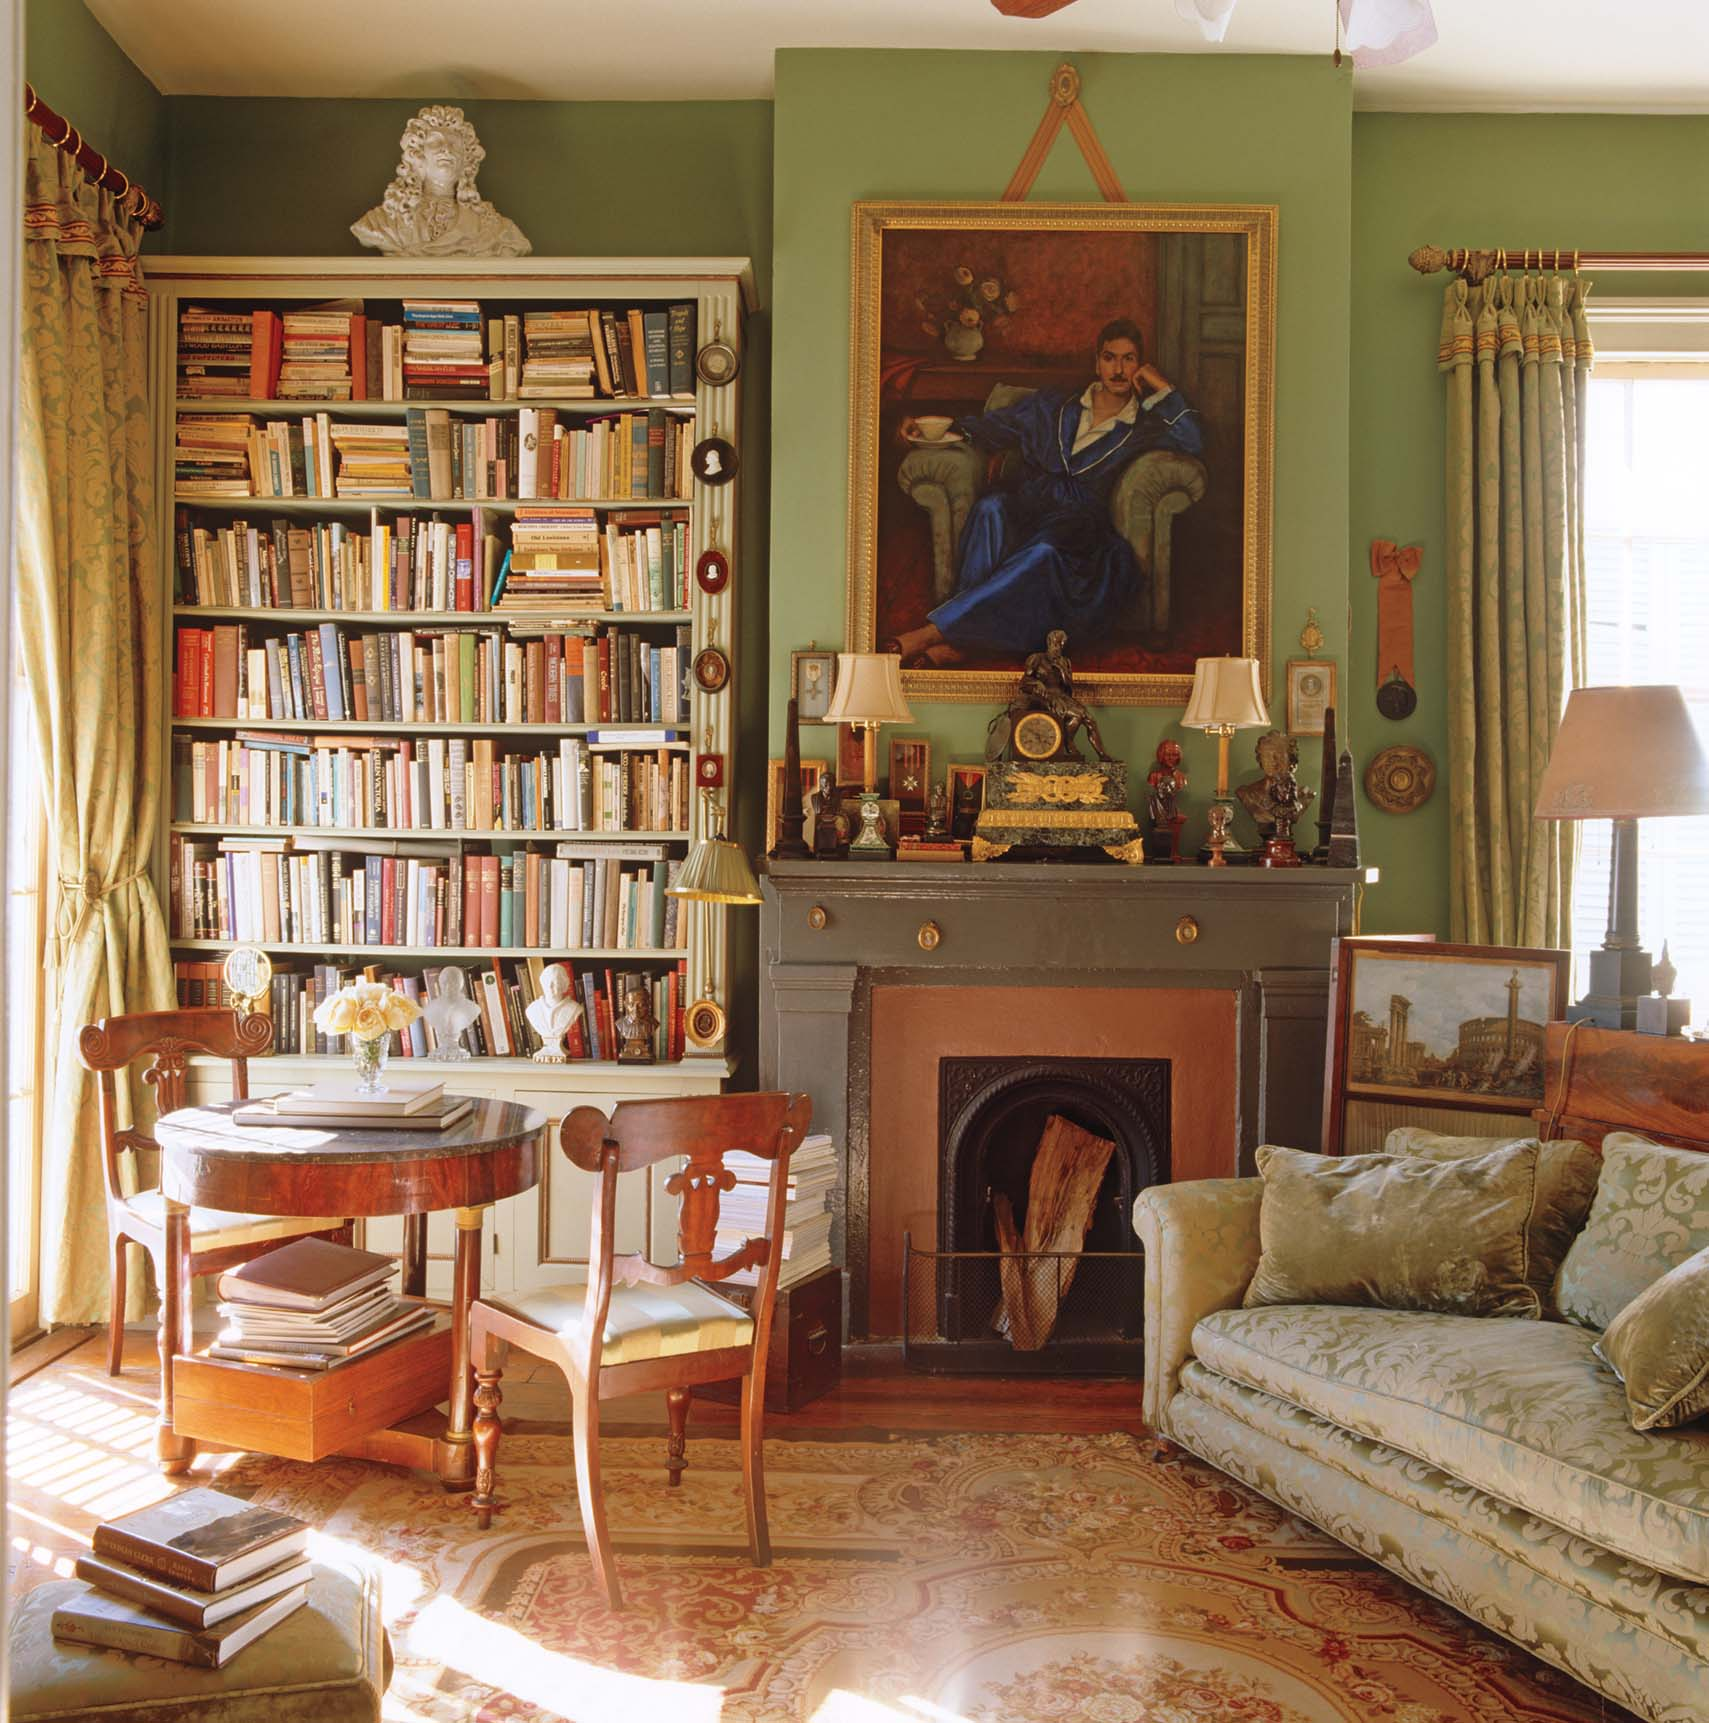 Patrick Dunne's home library is painted a soft green and is filled with sunlight by tall windows. A portrait hanging above the fireplace in the living room sets the tone for the library corner where a Biedermeier table and chairs provide a sunlit place to read